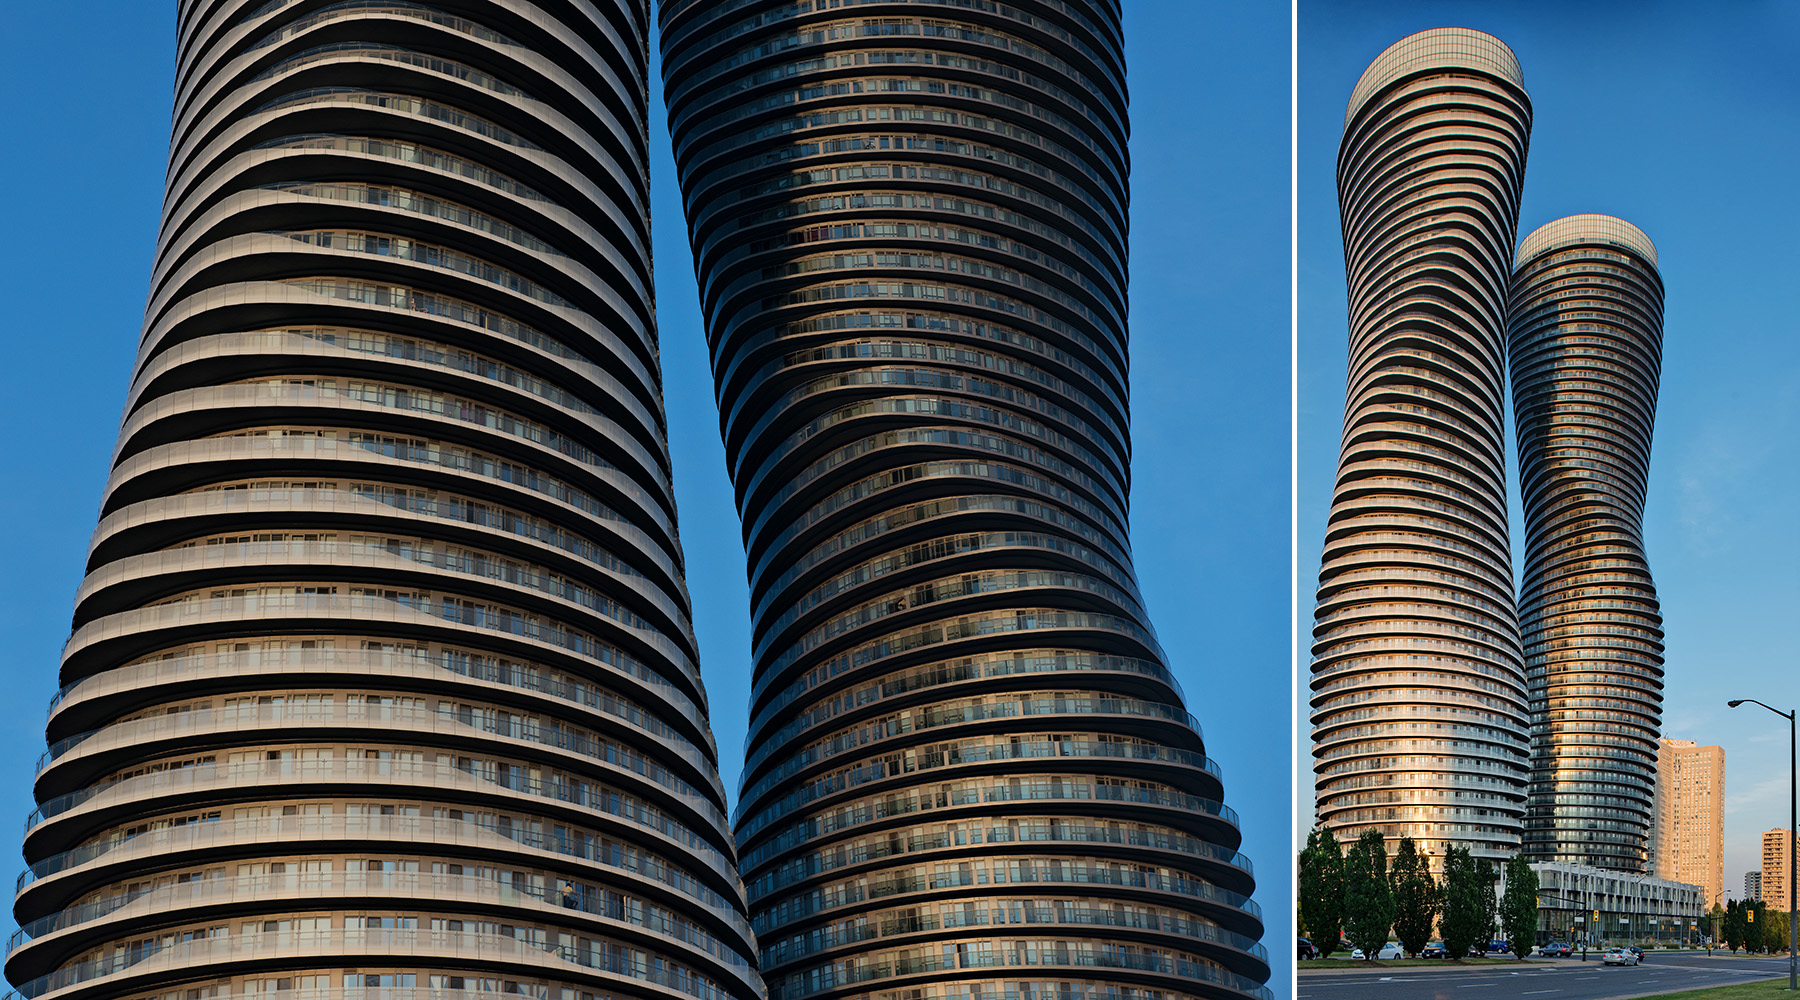 Architects Toronto Exploring Toronto Architecture The Absolute Towers Aka The